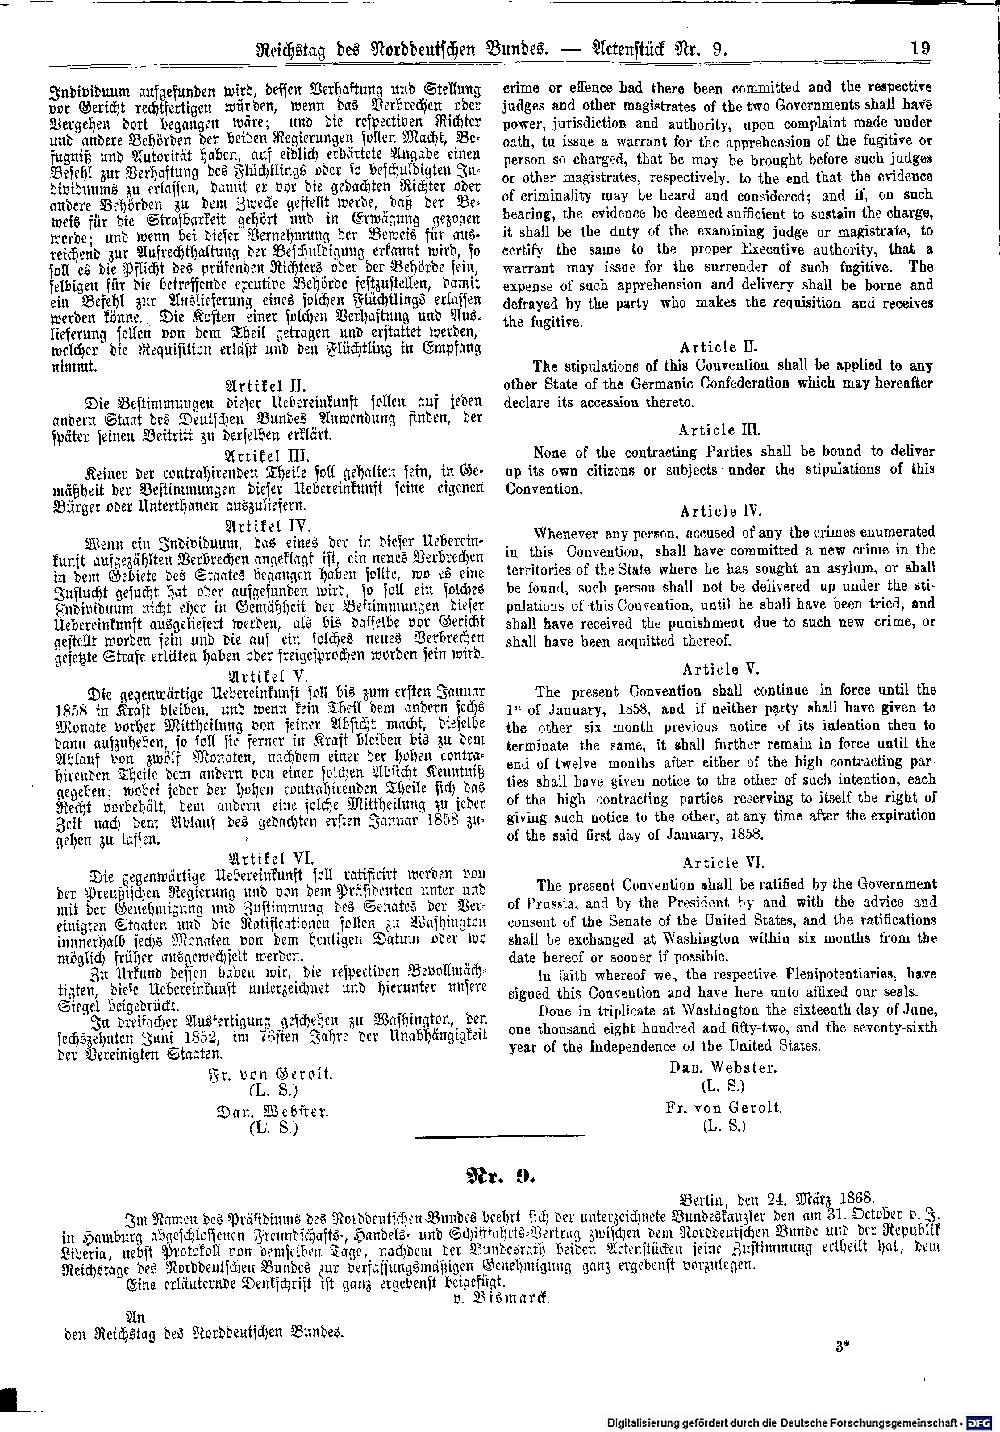 Scan of page 19